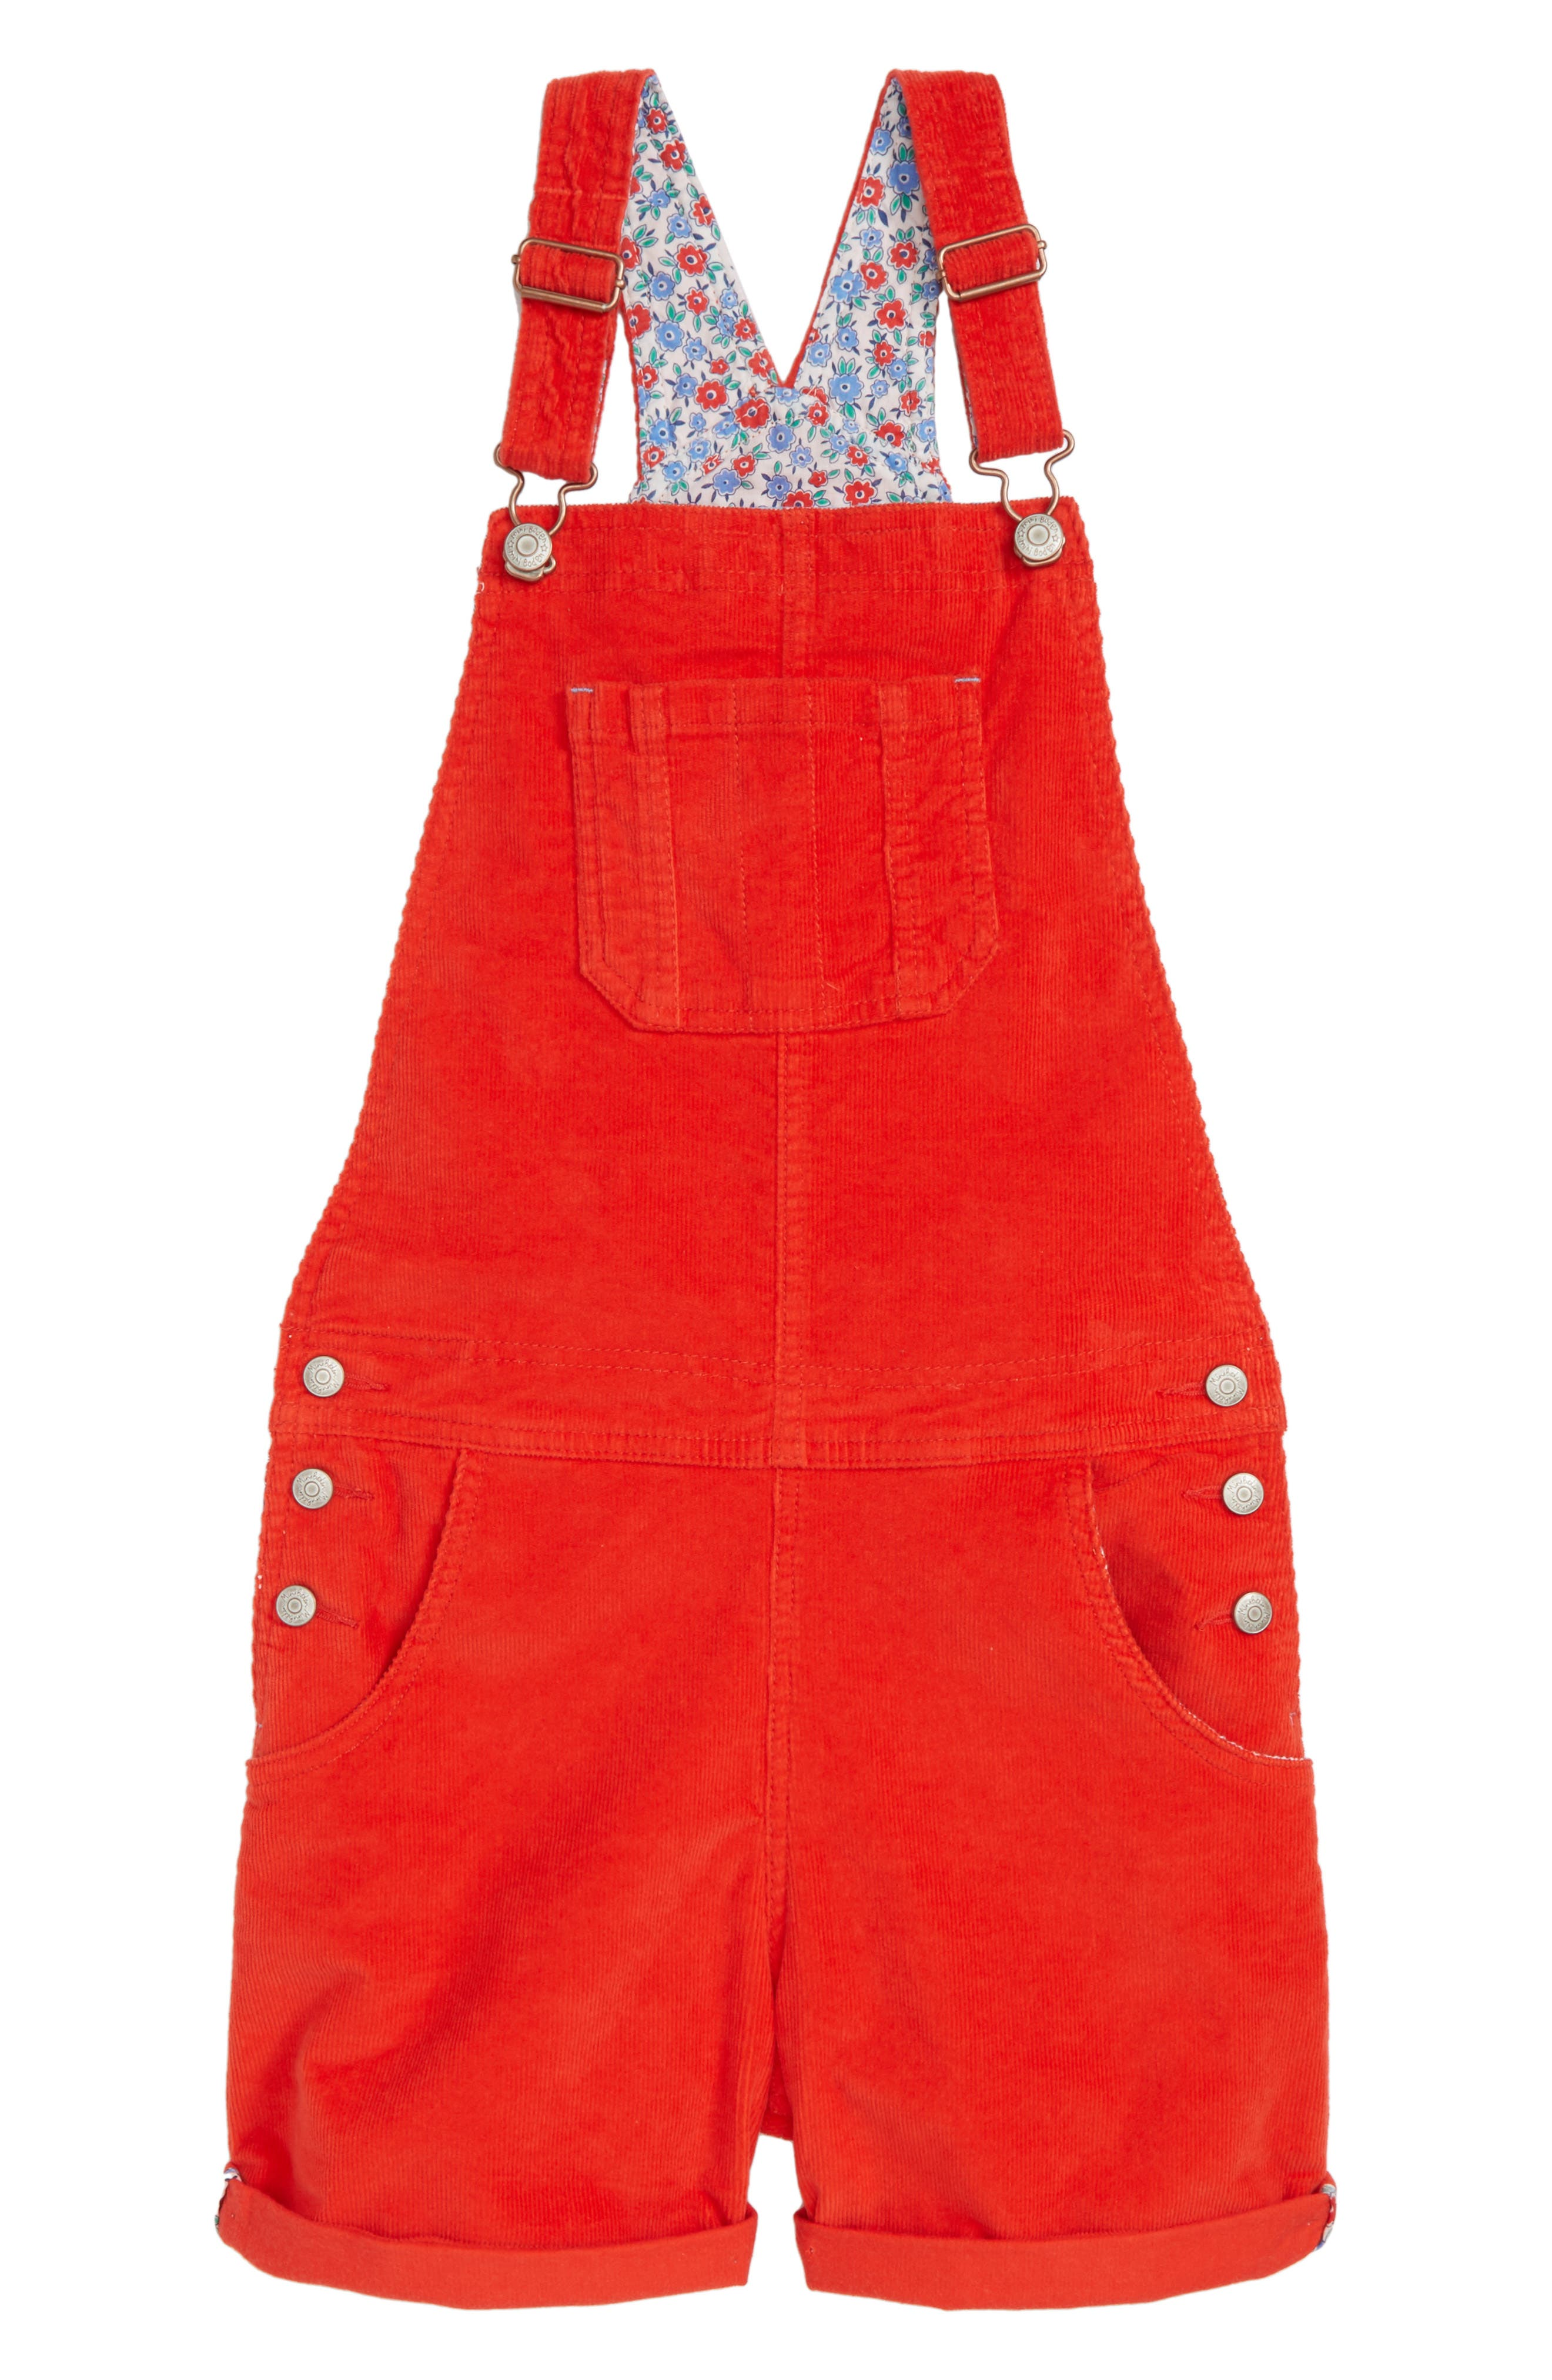 Short Corduroy Overalls,                             Main thumbnail 1, color,                             Rosehip Red